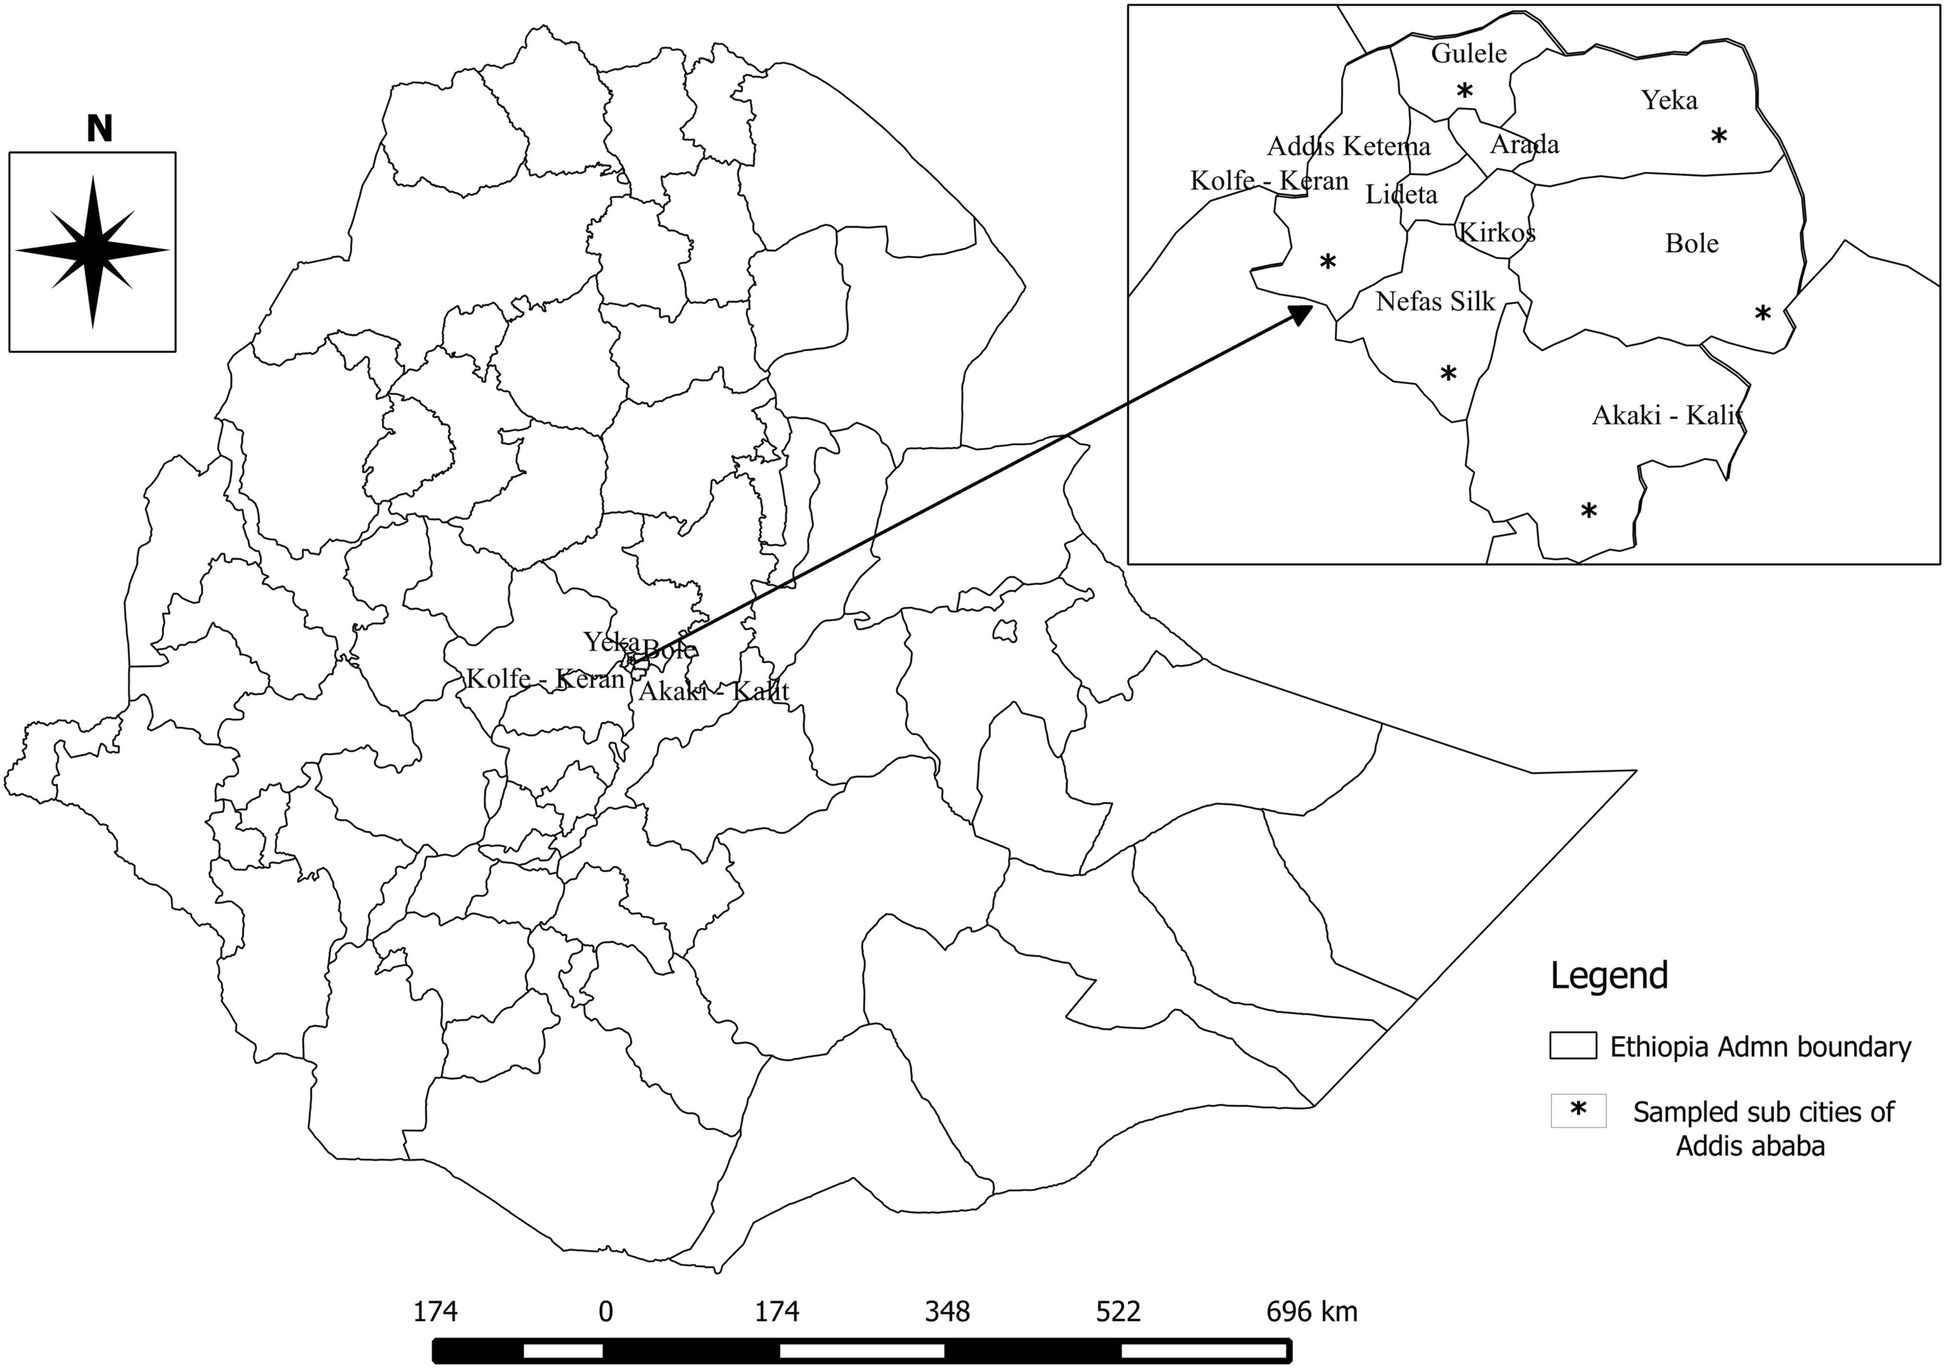 Brucellosis in the Addis Ababa dairy cattle: the myths and